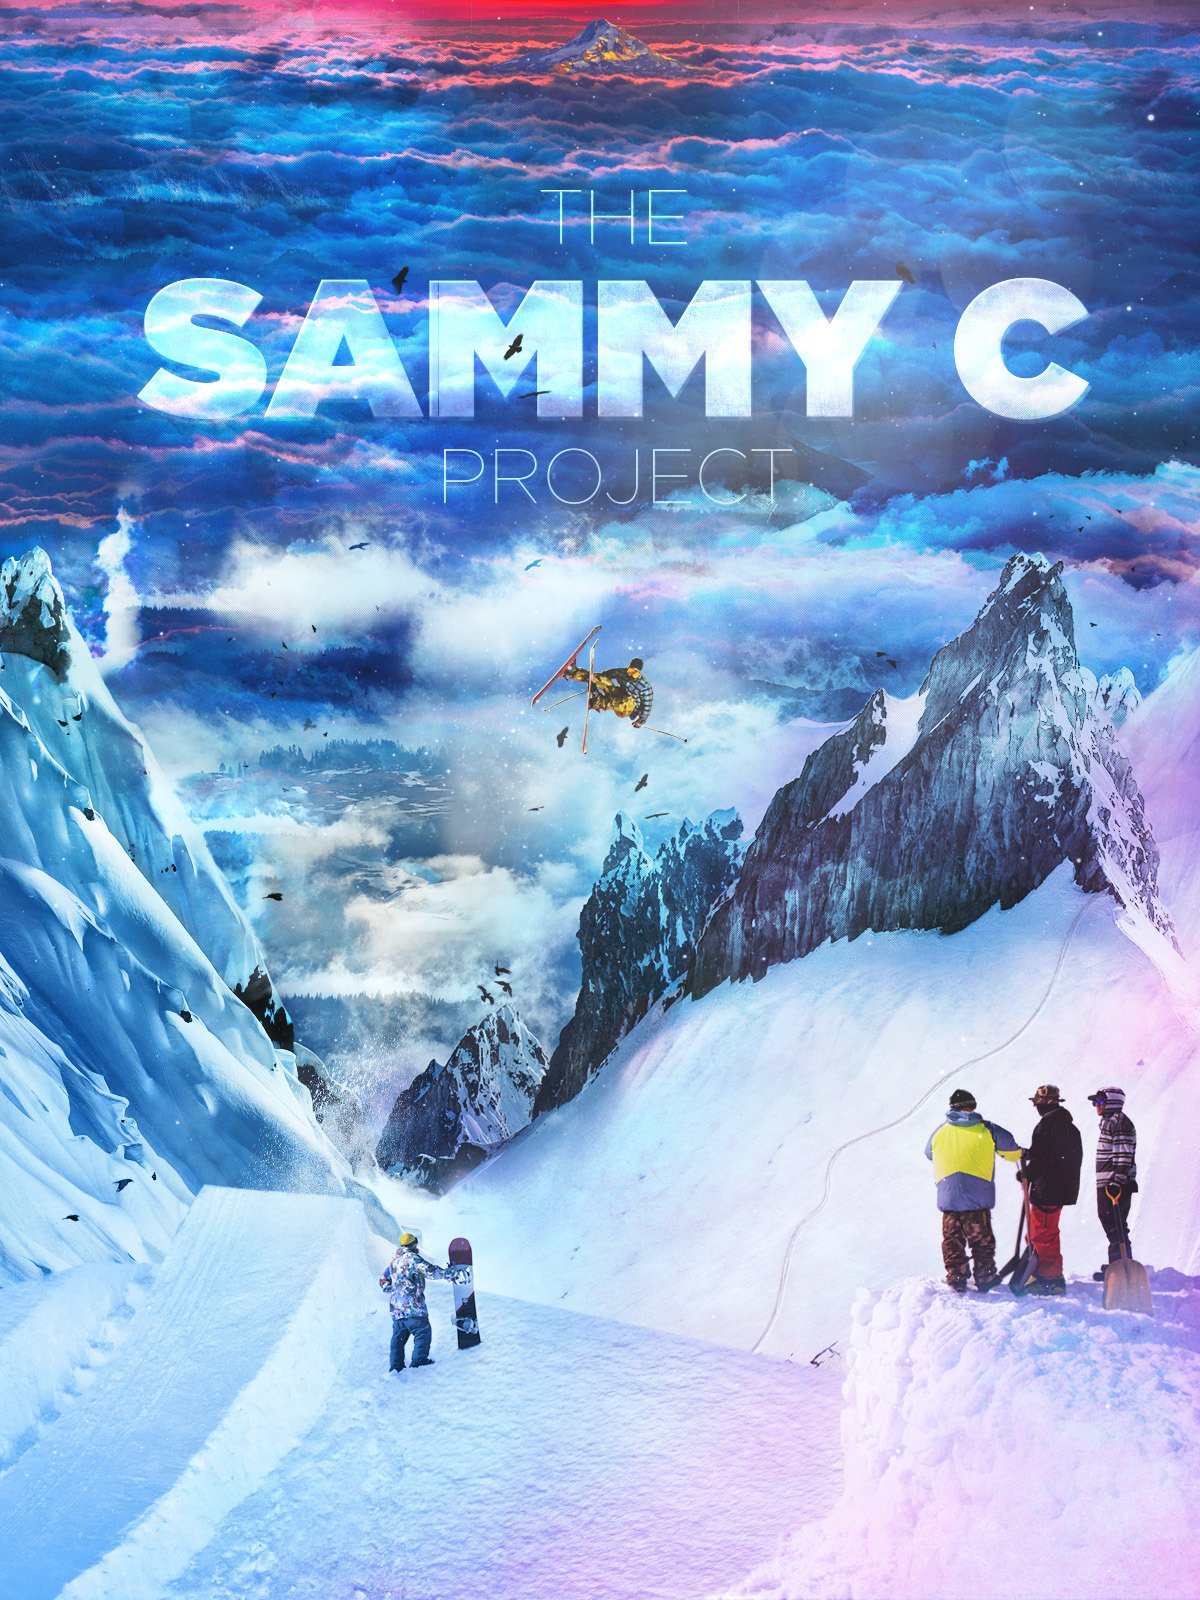 The Sammy C Project